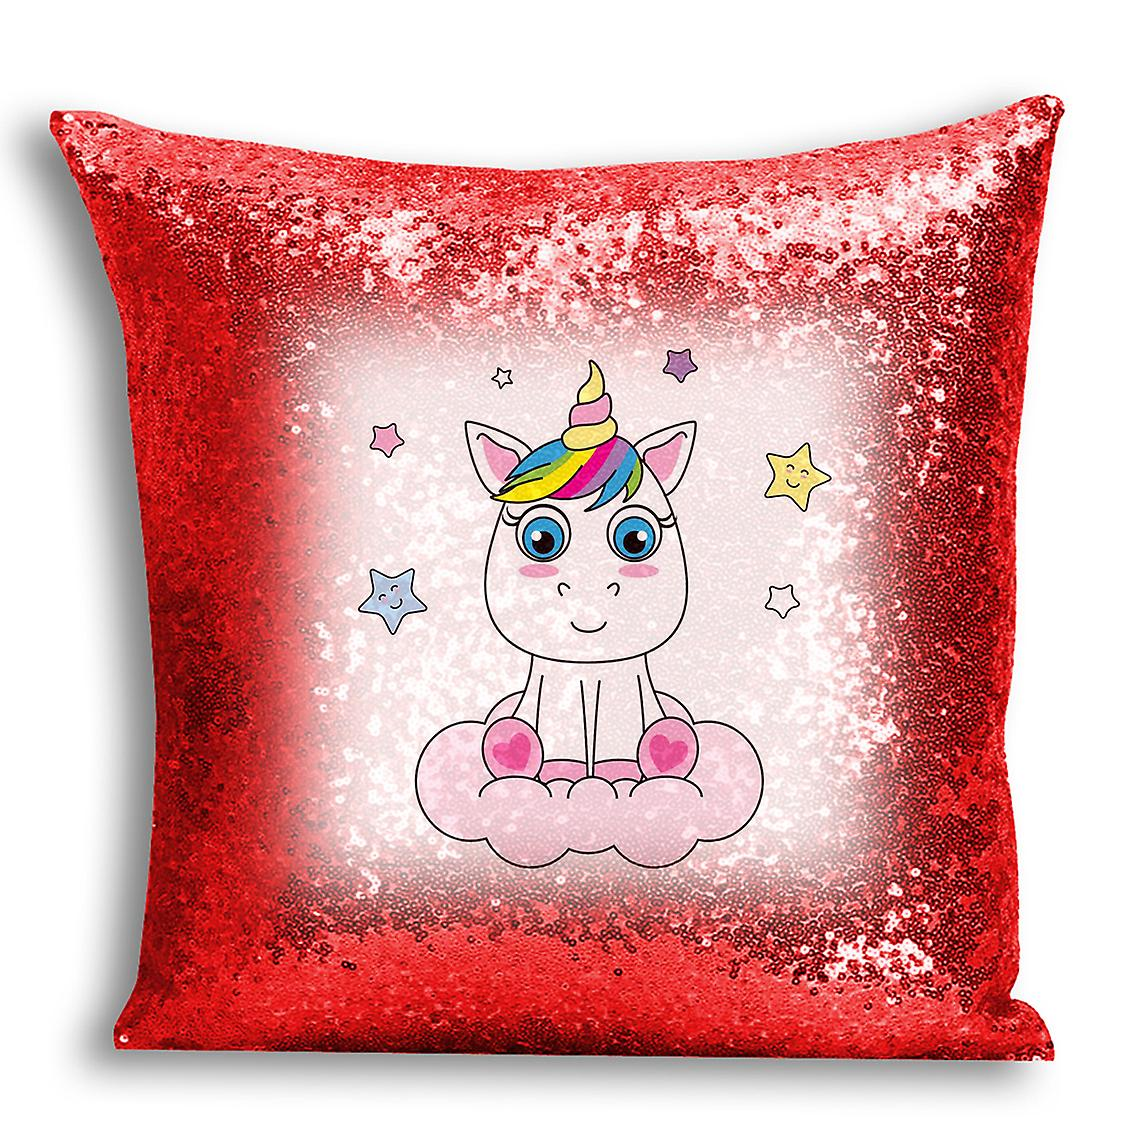 I tronixsUnicorn Red With Home CushionPillow For 8 Cover Sequin Inserted Decor Design Printed EHIeWDY9b2